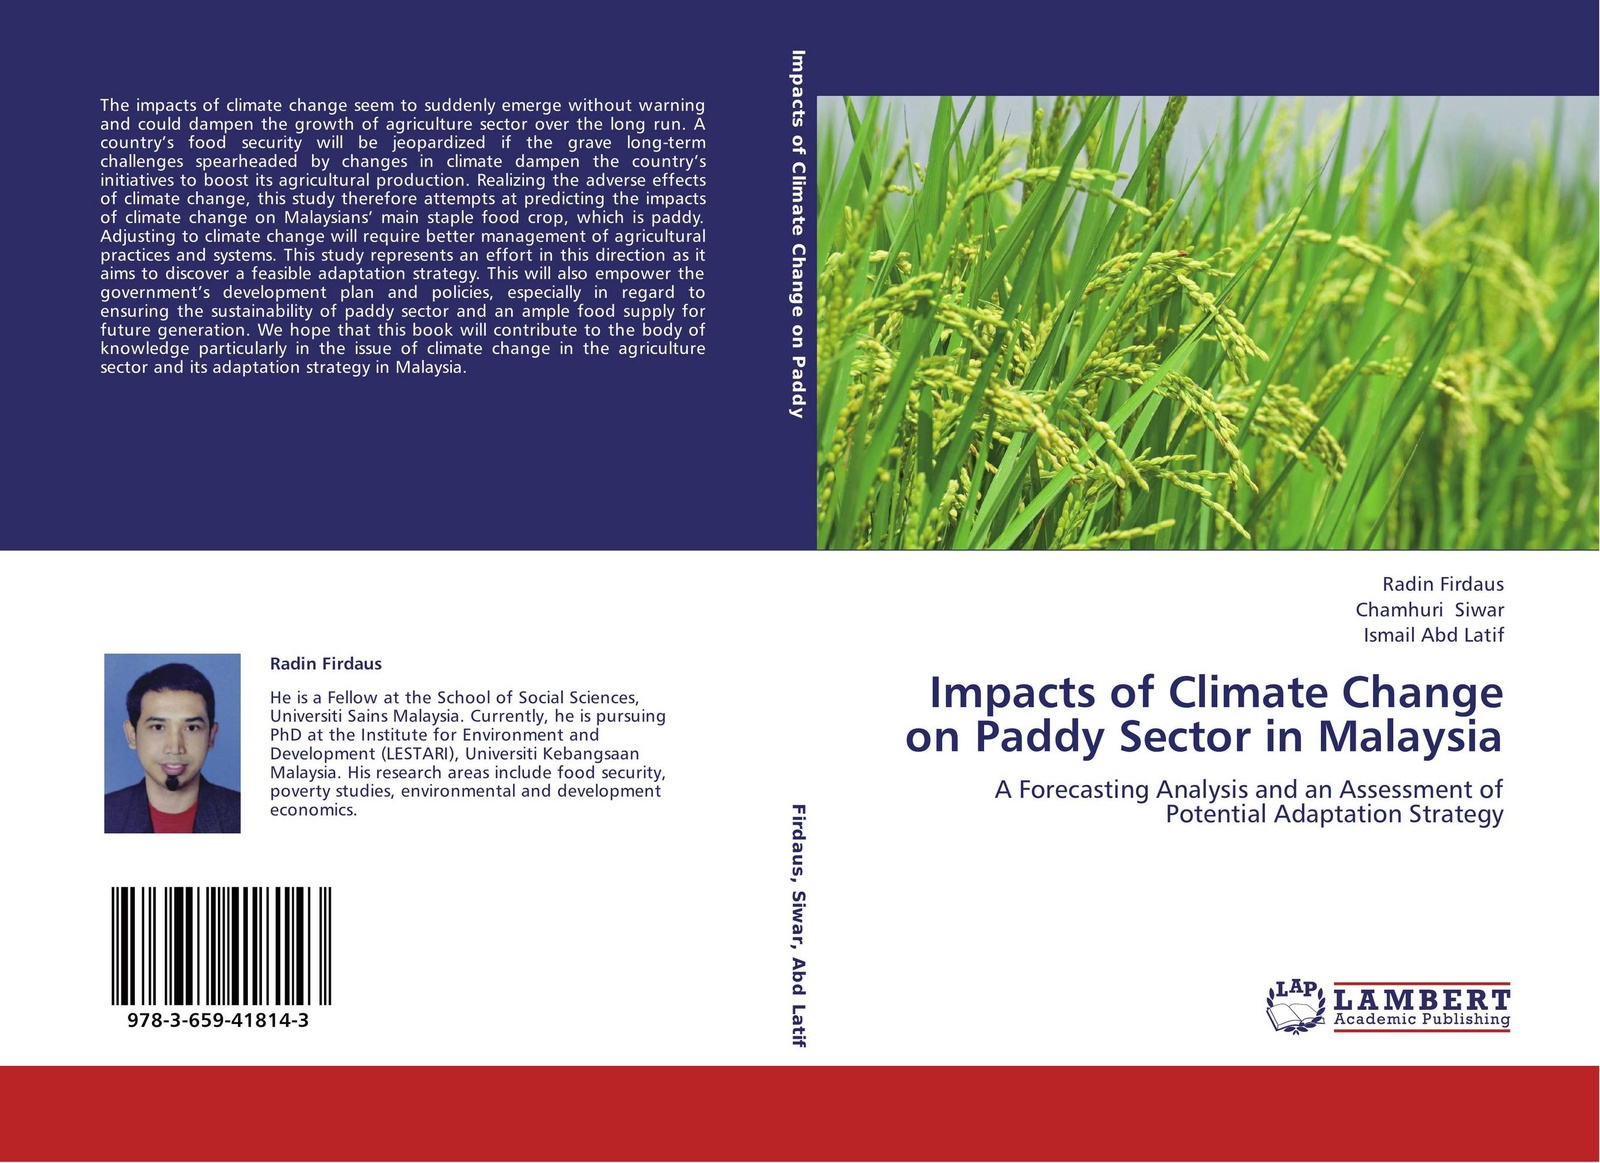 Radin Firdaus,Chamhuri Siwar and Ismail Abd Latif Impacts of Climate Change on Paddy Sector in Malaysia willem norde nanotechnology in the agri food sector